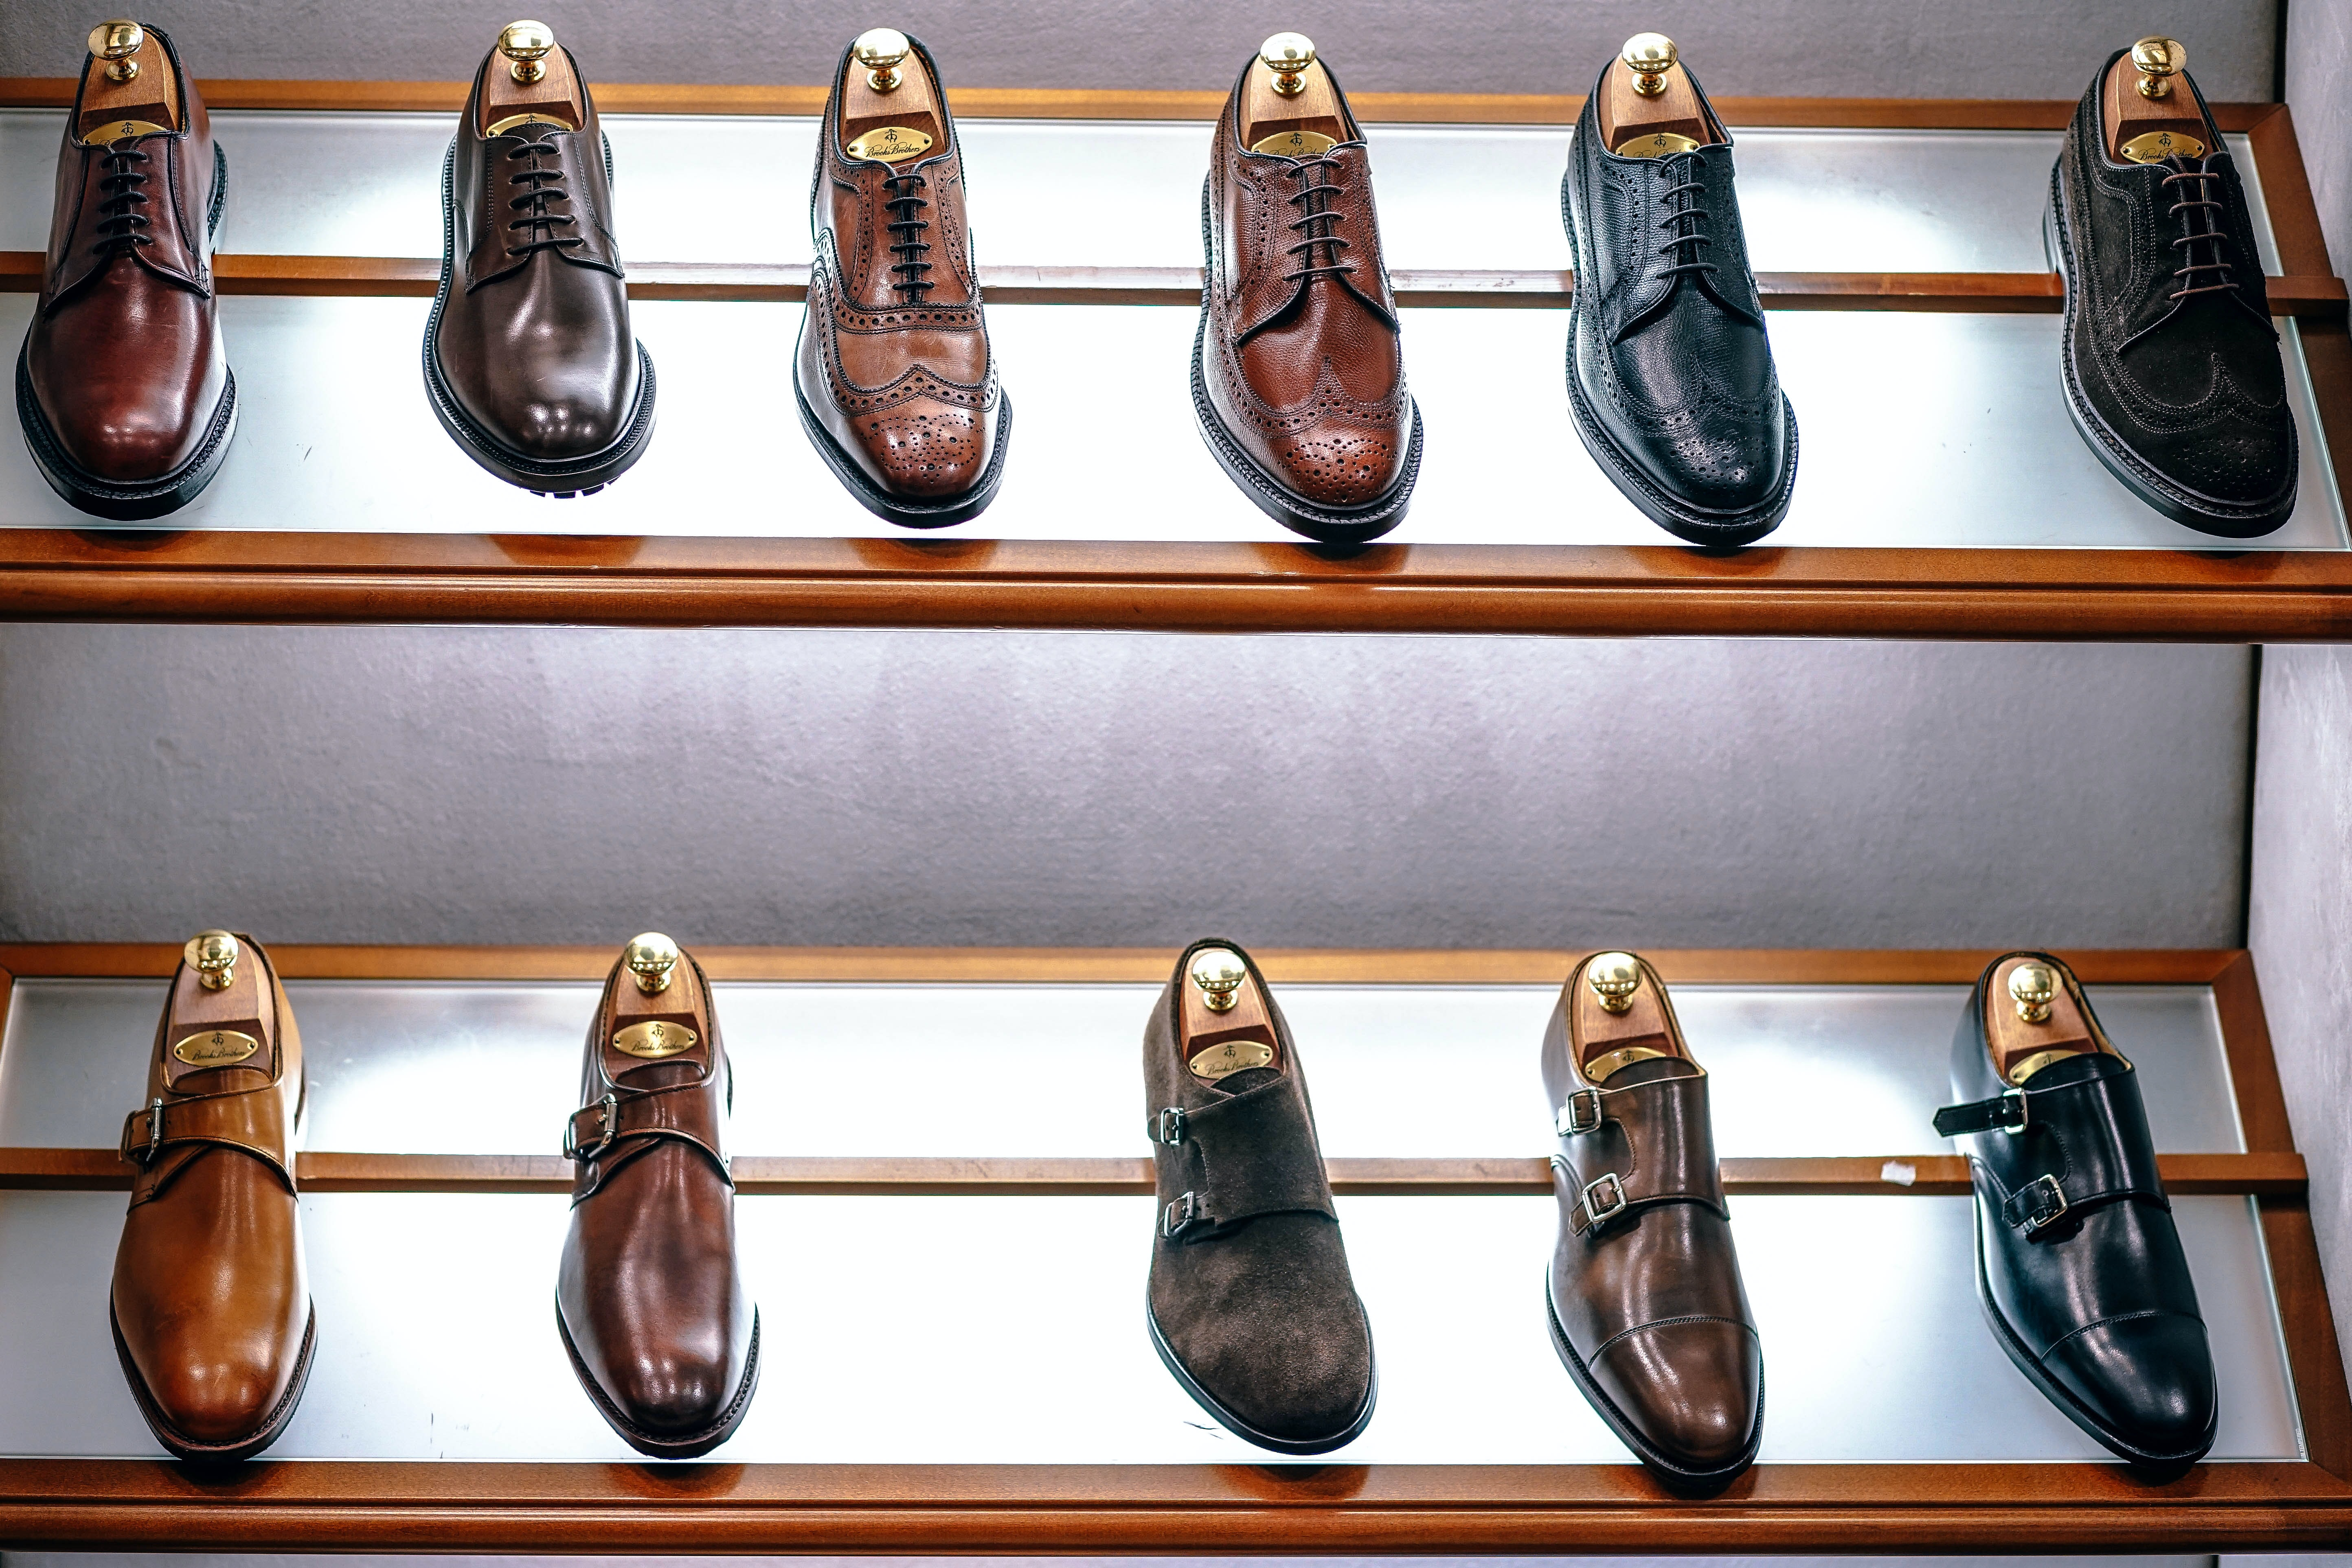 Shoes for men on display at a store.